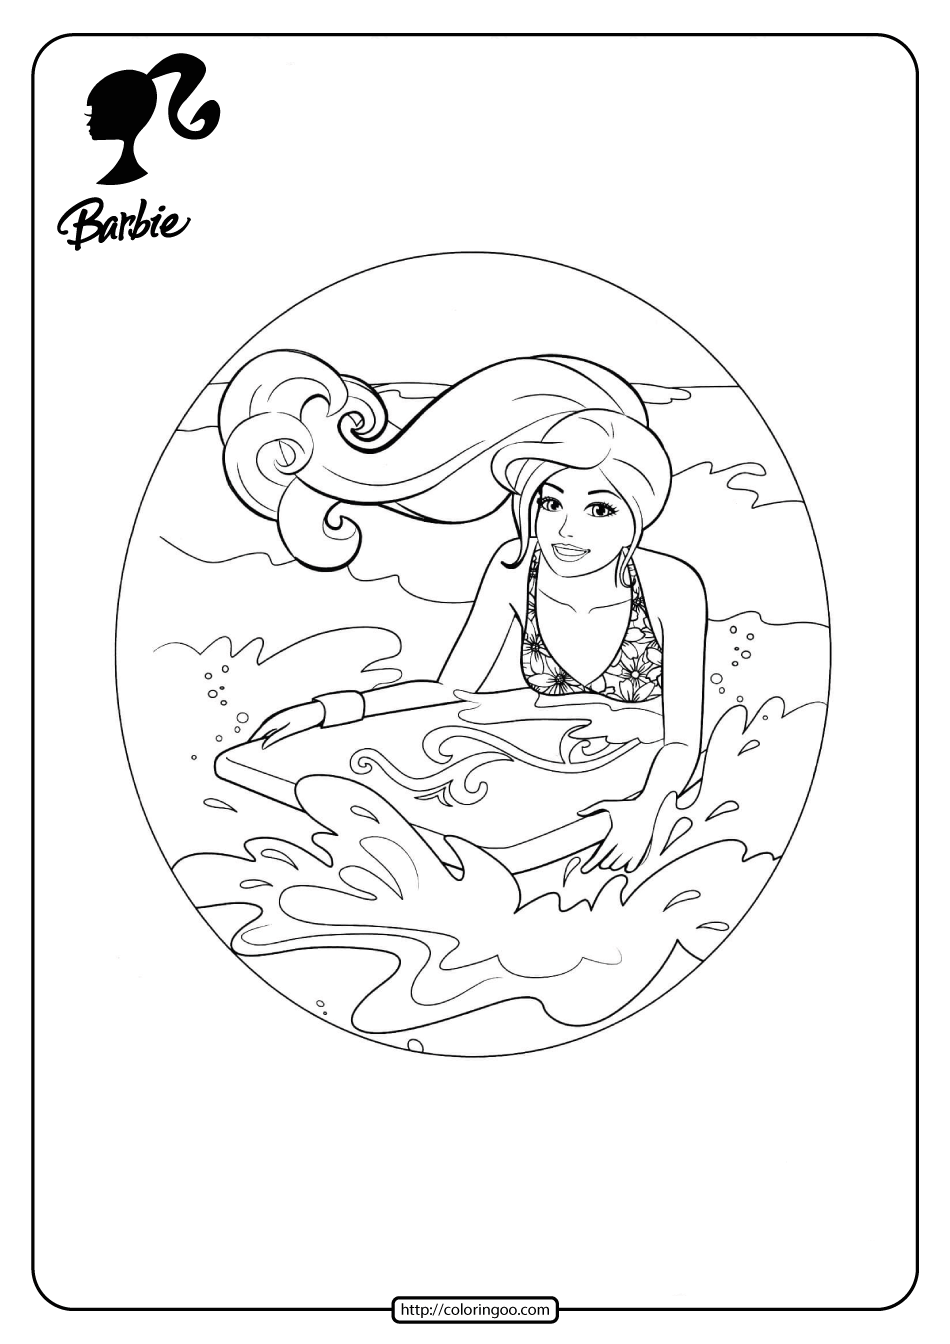 Free Printable Barbie Surfing Pdf Coloring Pages 11